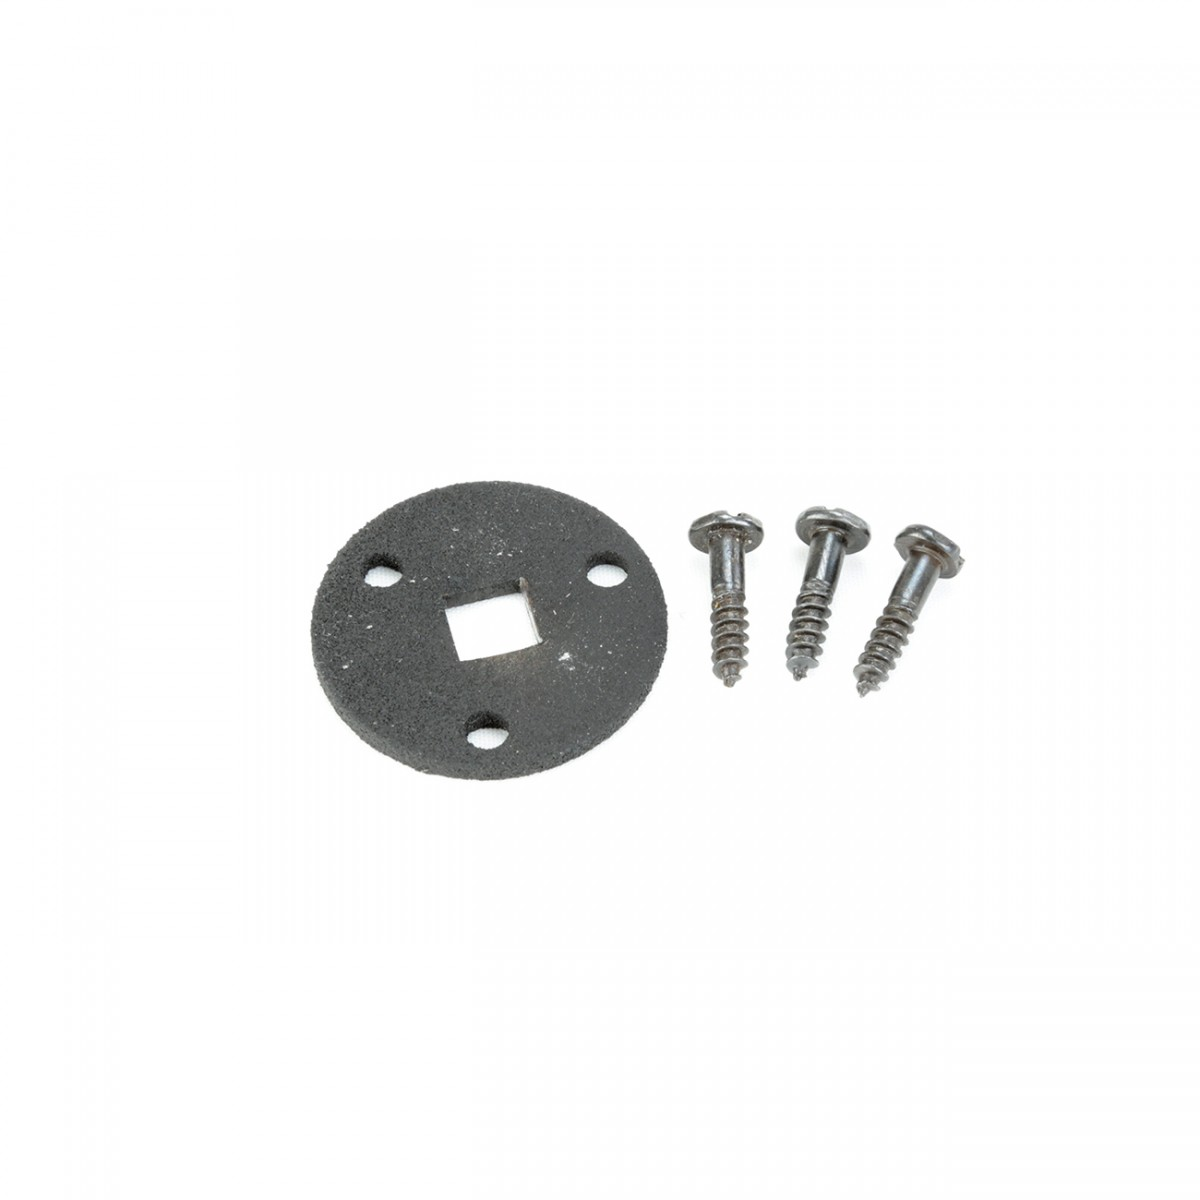 Backplate for Dummy Knob Spindle